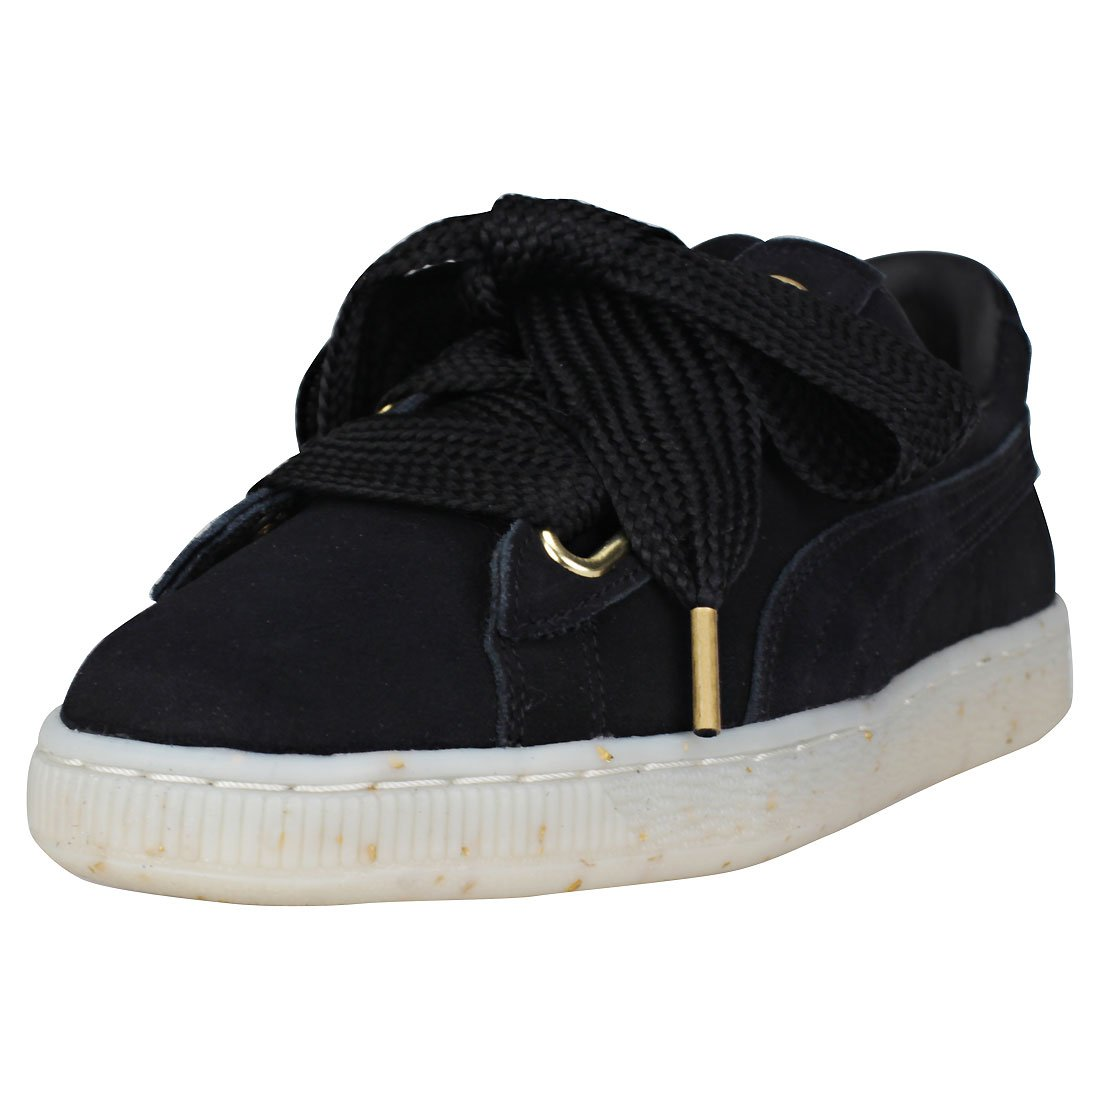 Puma Suede Heart Celebrate Sneaker Damen  7 UK - 405 EU